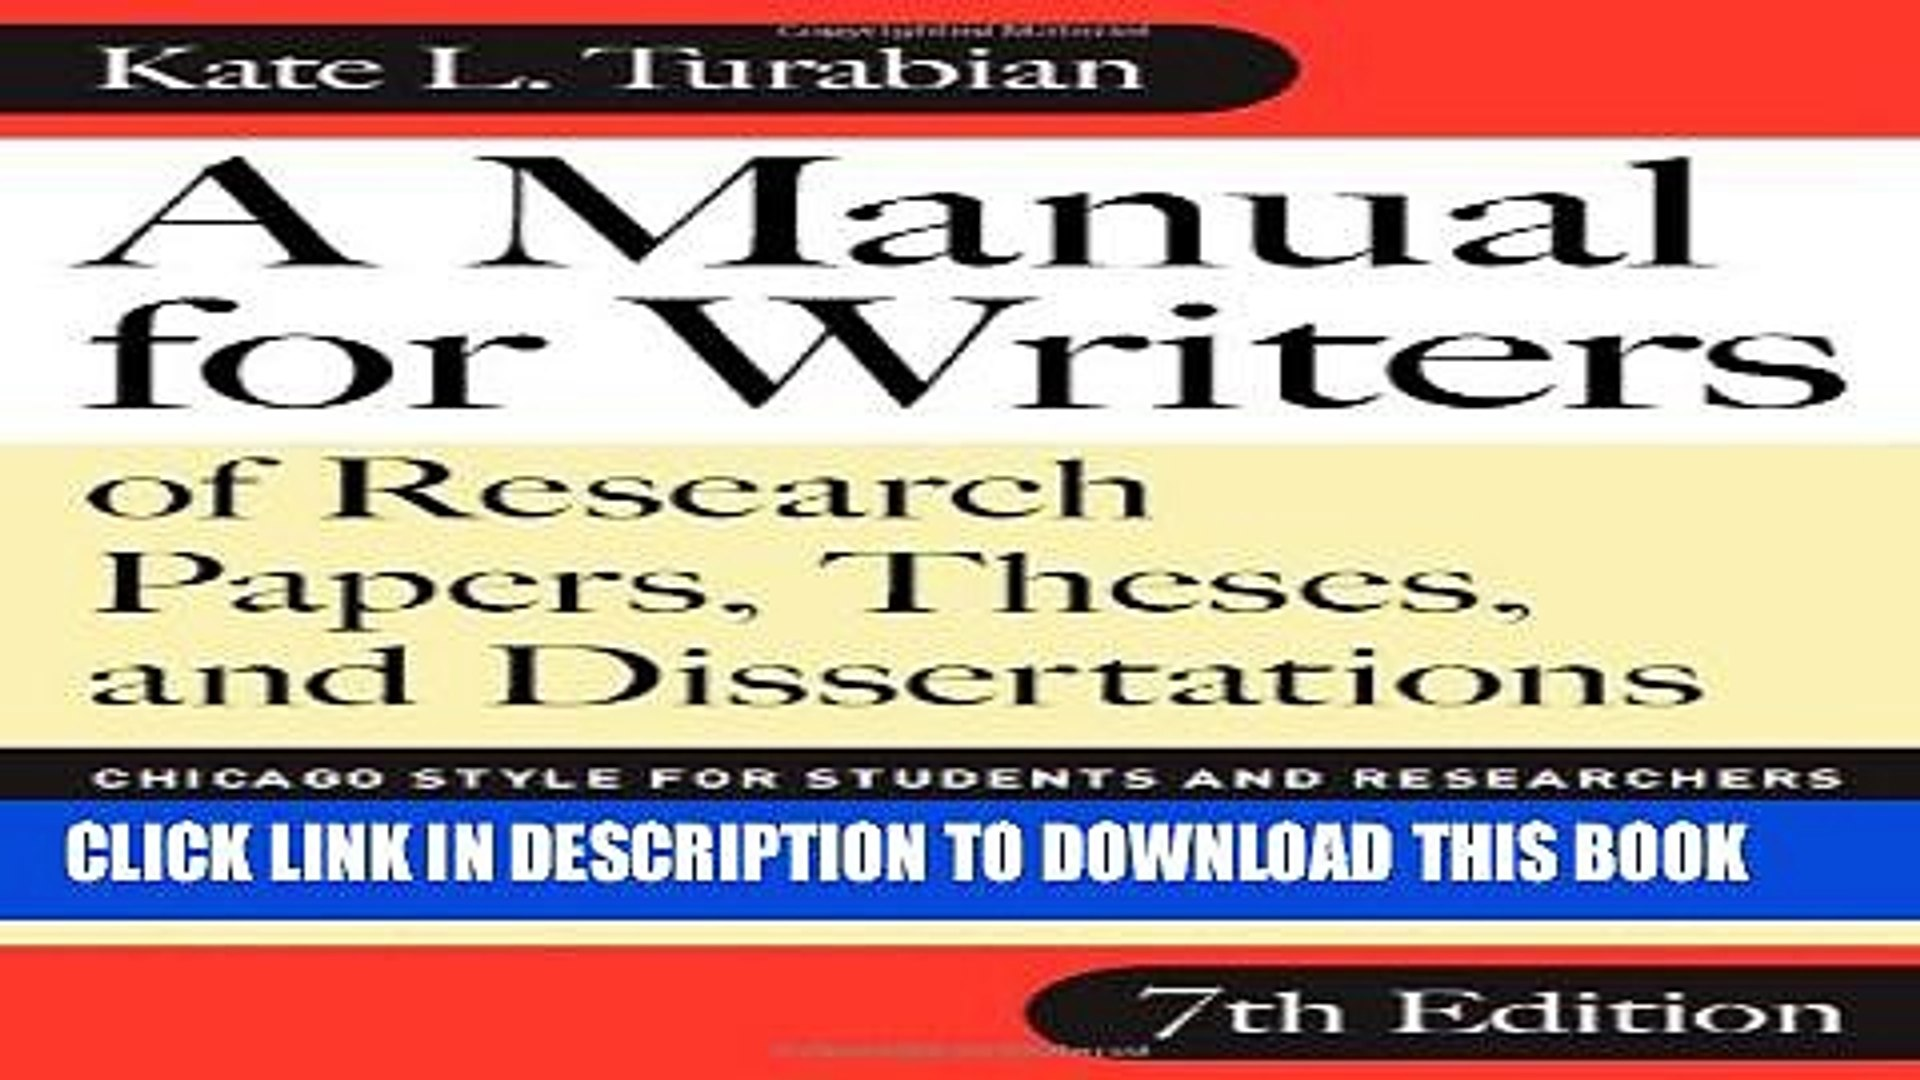 021 Research Paper Manual For Writers Of Papers Theses And Dissertations X1080 Sensational A Eighth Edition Pdf 9th 8th Full